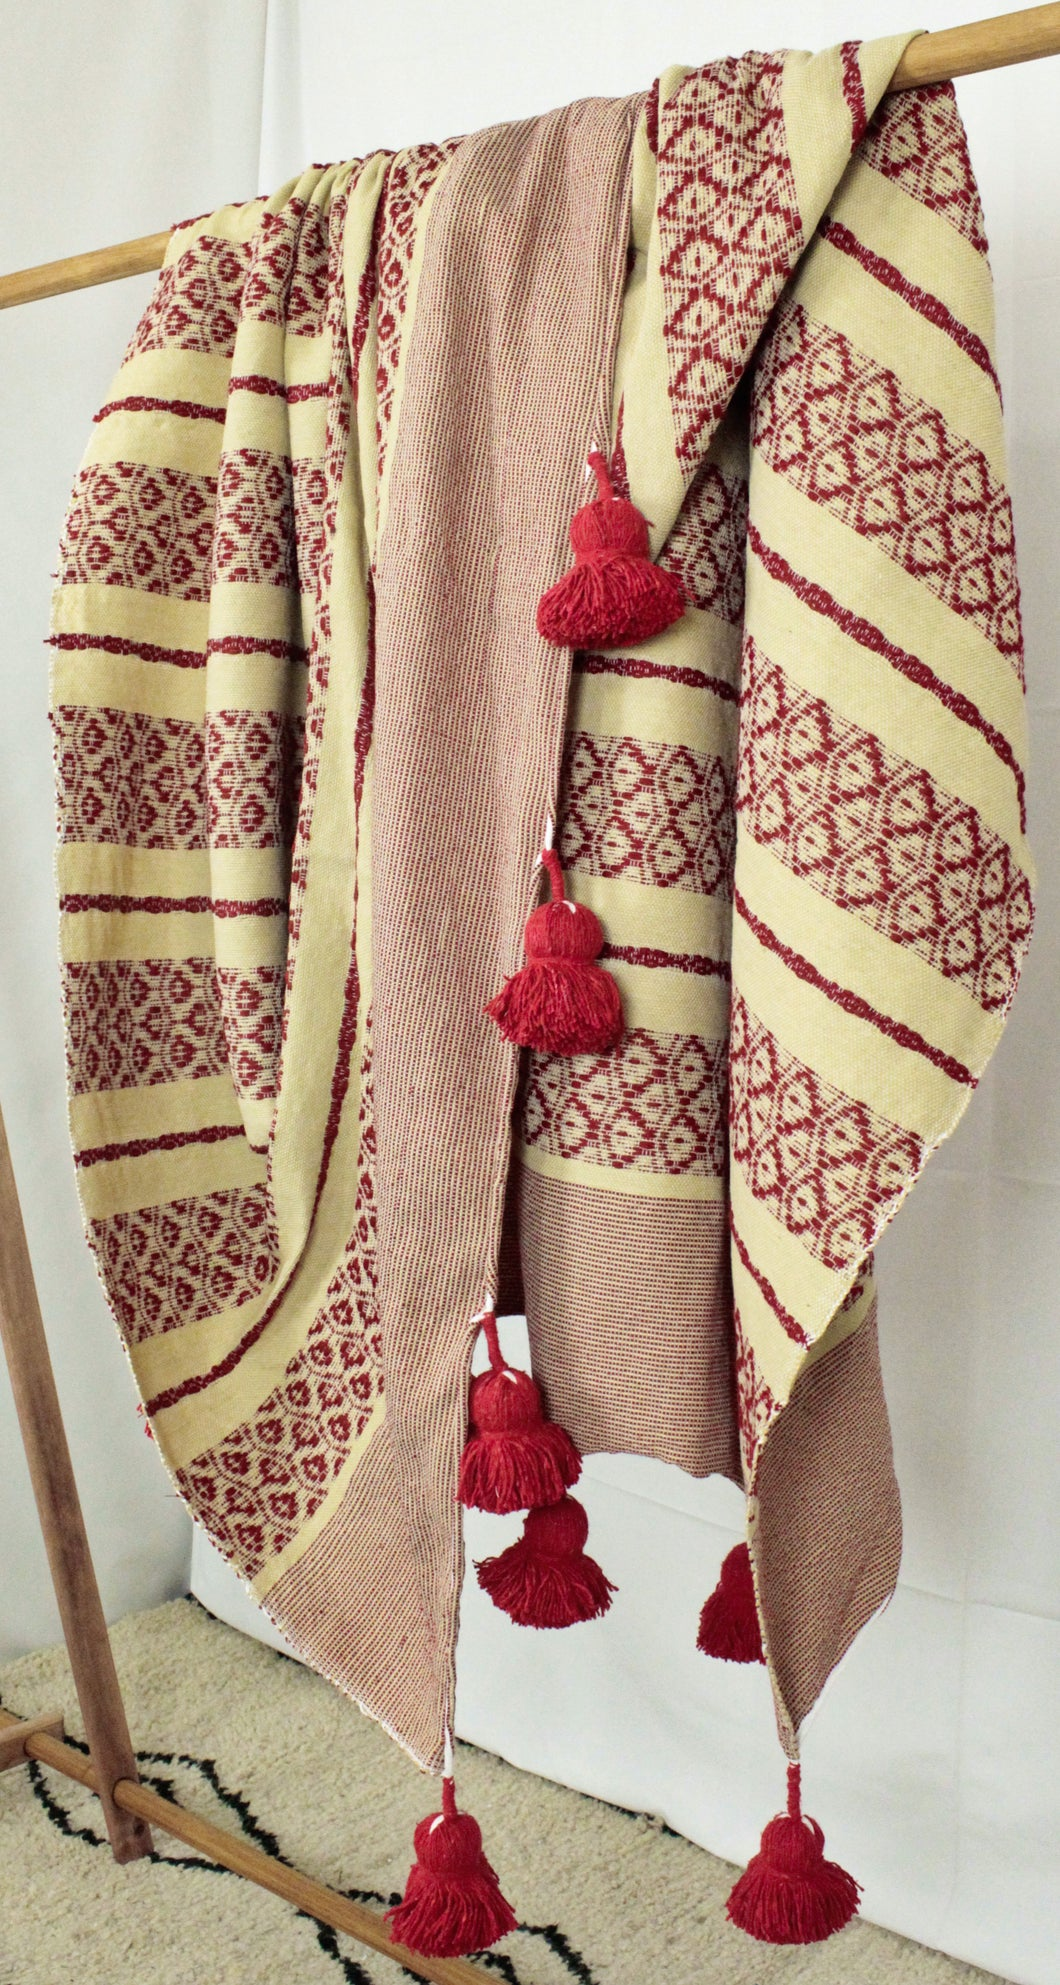 Wool Design Pom Pom Blanket- Red and Tan with Red Pom Poms